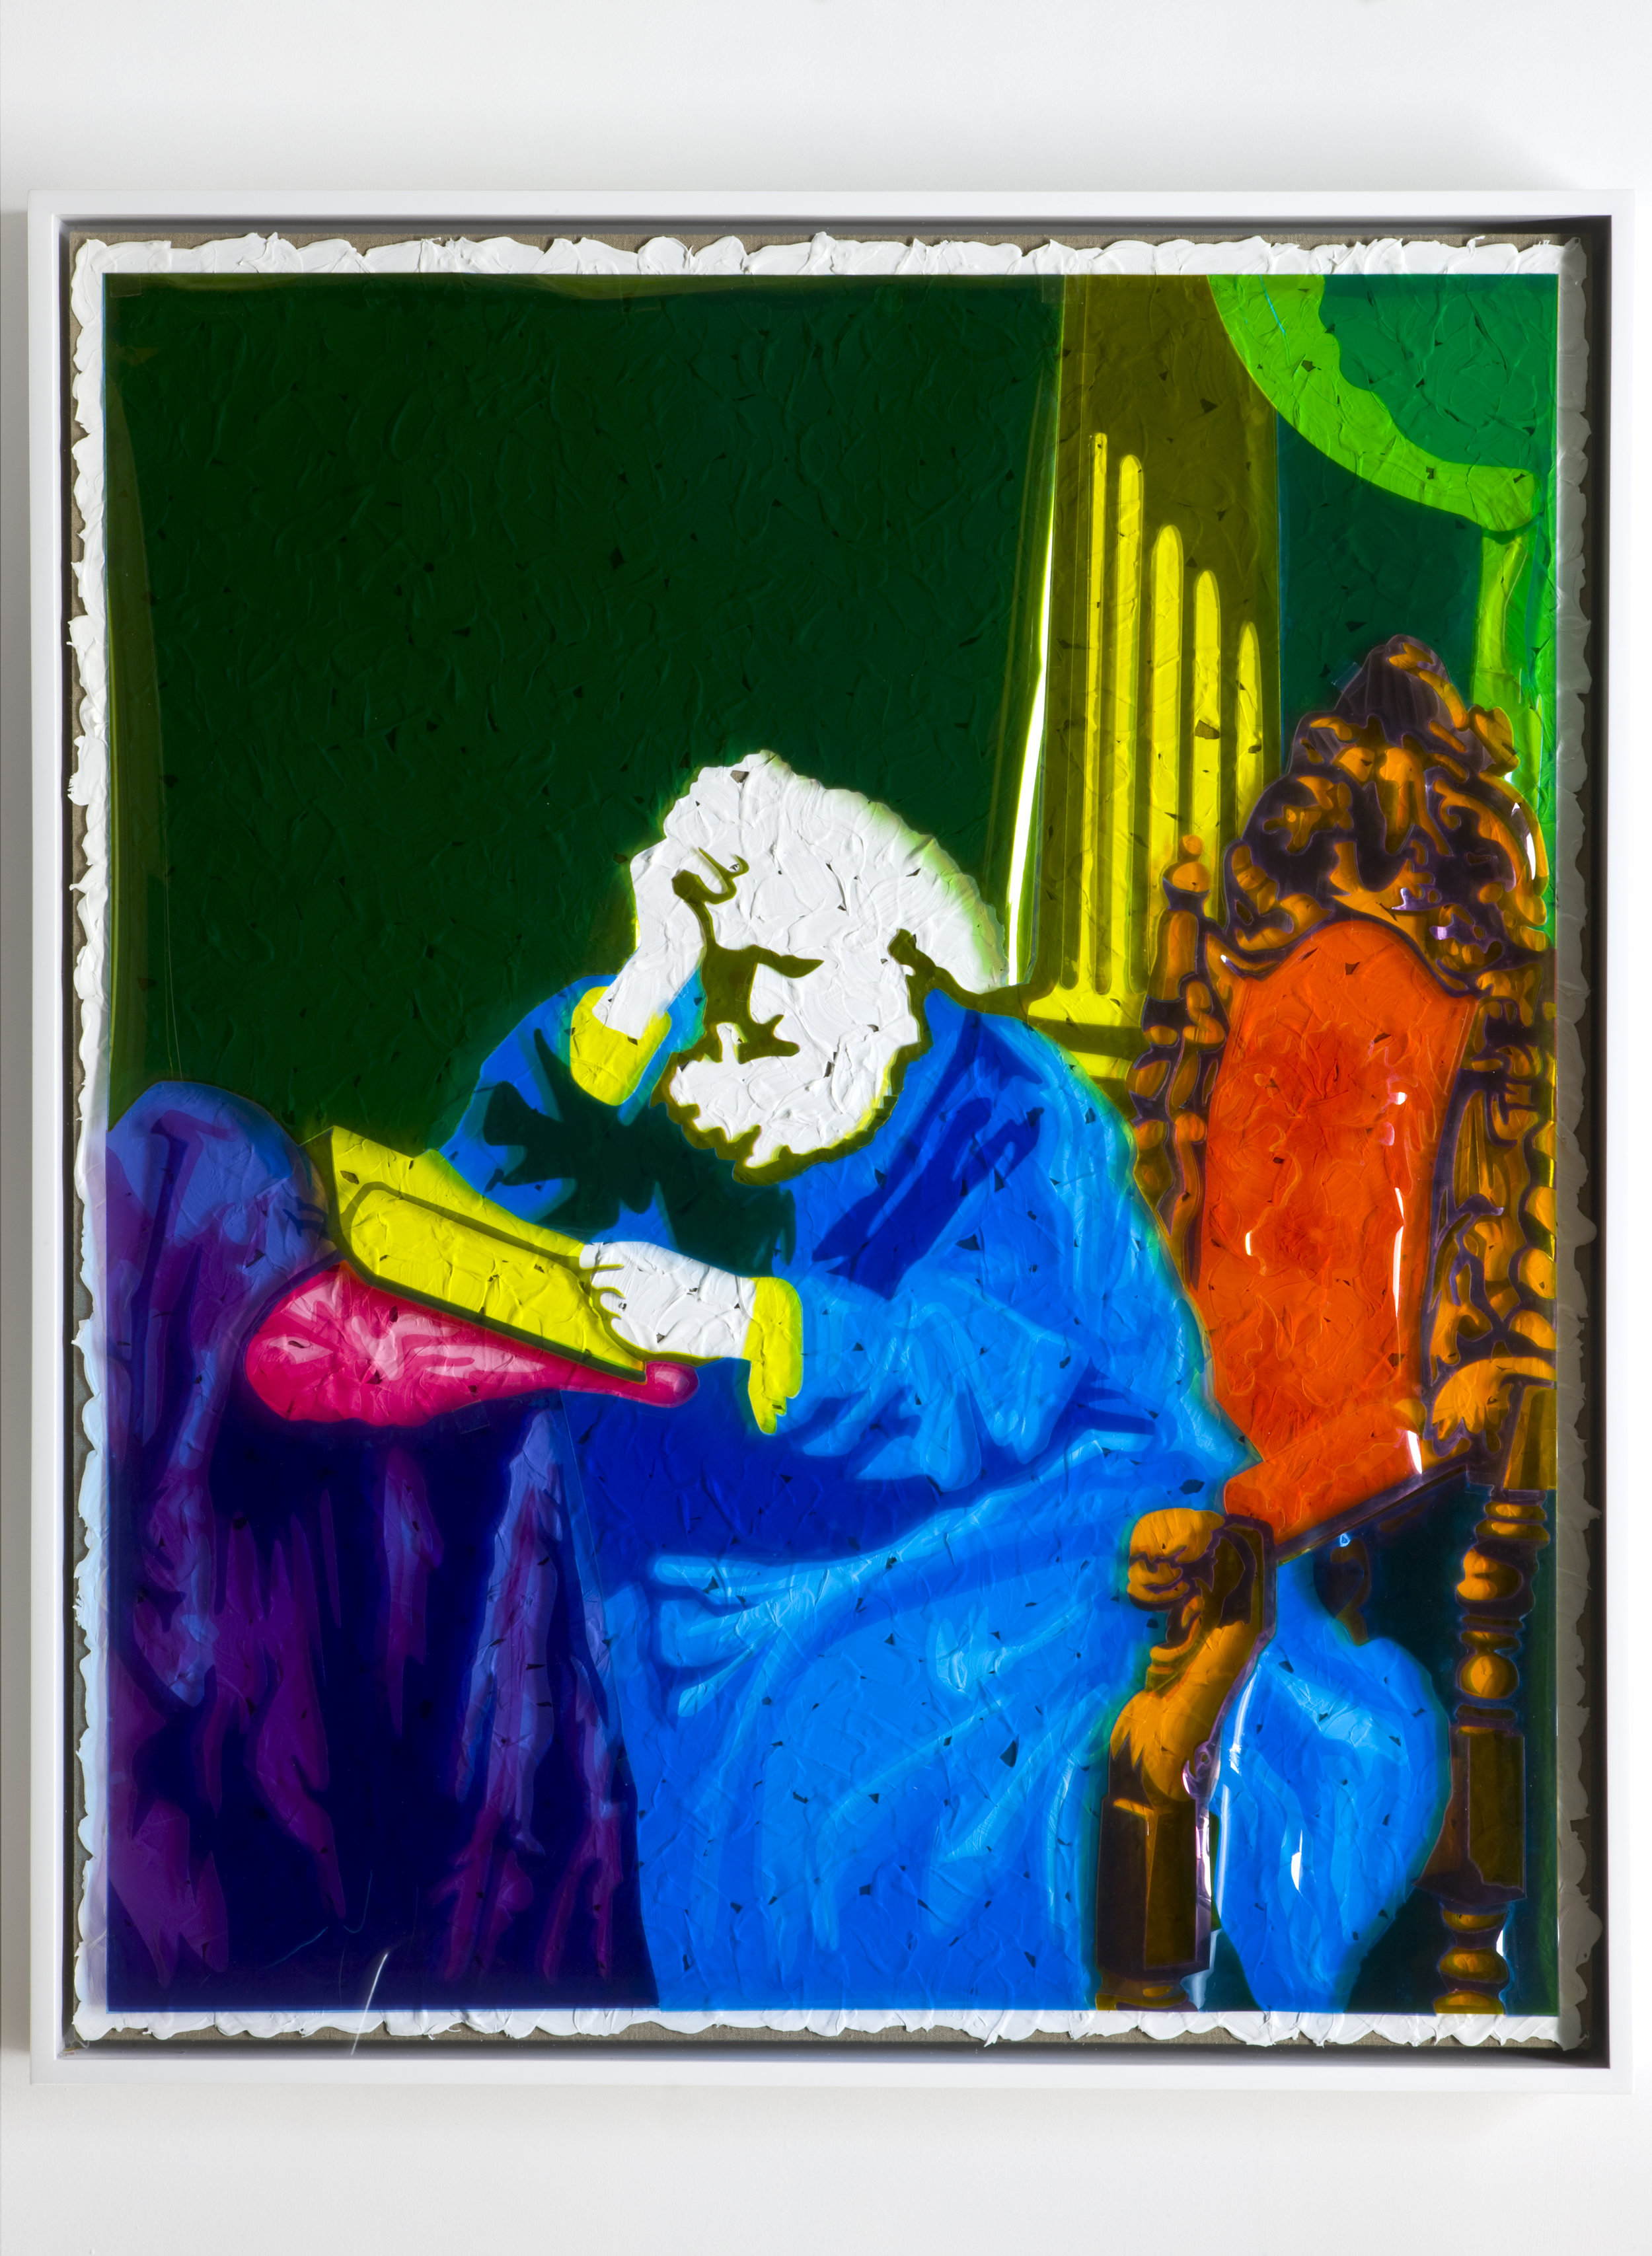 """Overlay Series: Early Black and White Photograph (""""Portrait by Antoine Samuel Adam-Salomon, c. 1865); Color Acetate Red, Yellow and Blue; Brushstrokes; and Linen Canvas on Stretcher Bars., 2008 red, yellow and blue film gels and acrylic on linen canvas 119,4 x 100 cm - 47 x 39 3/8 inches"""